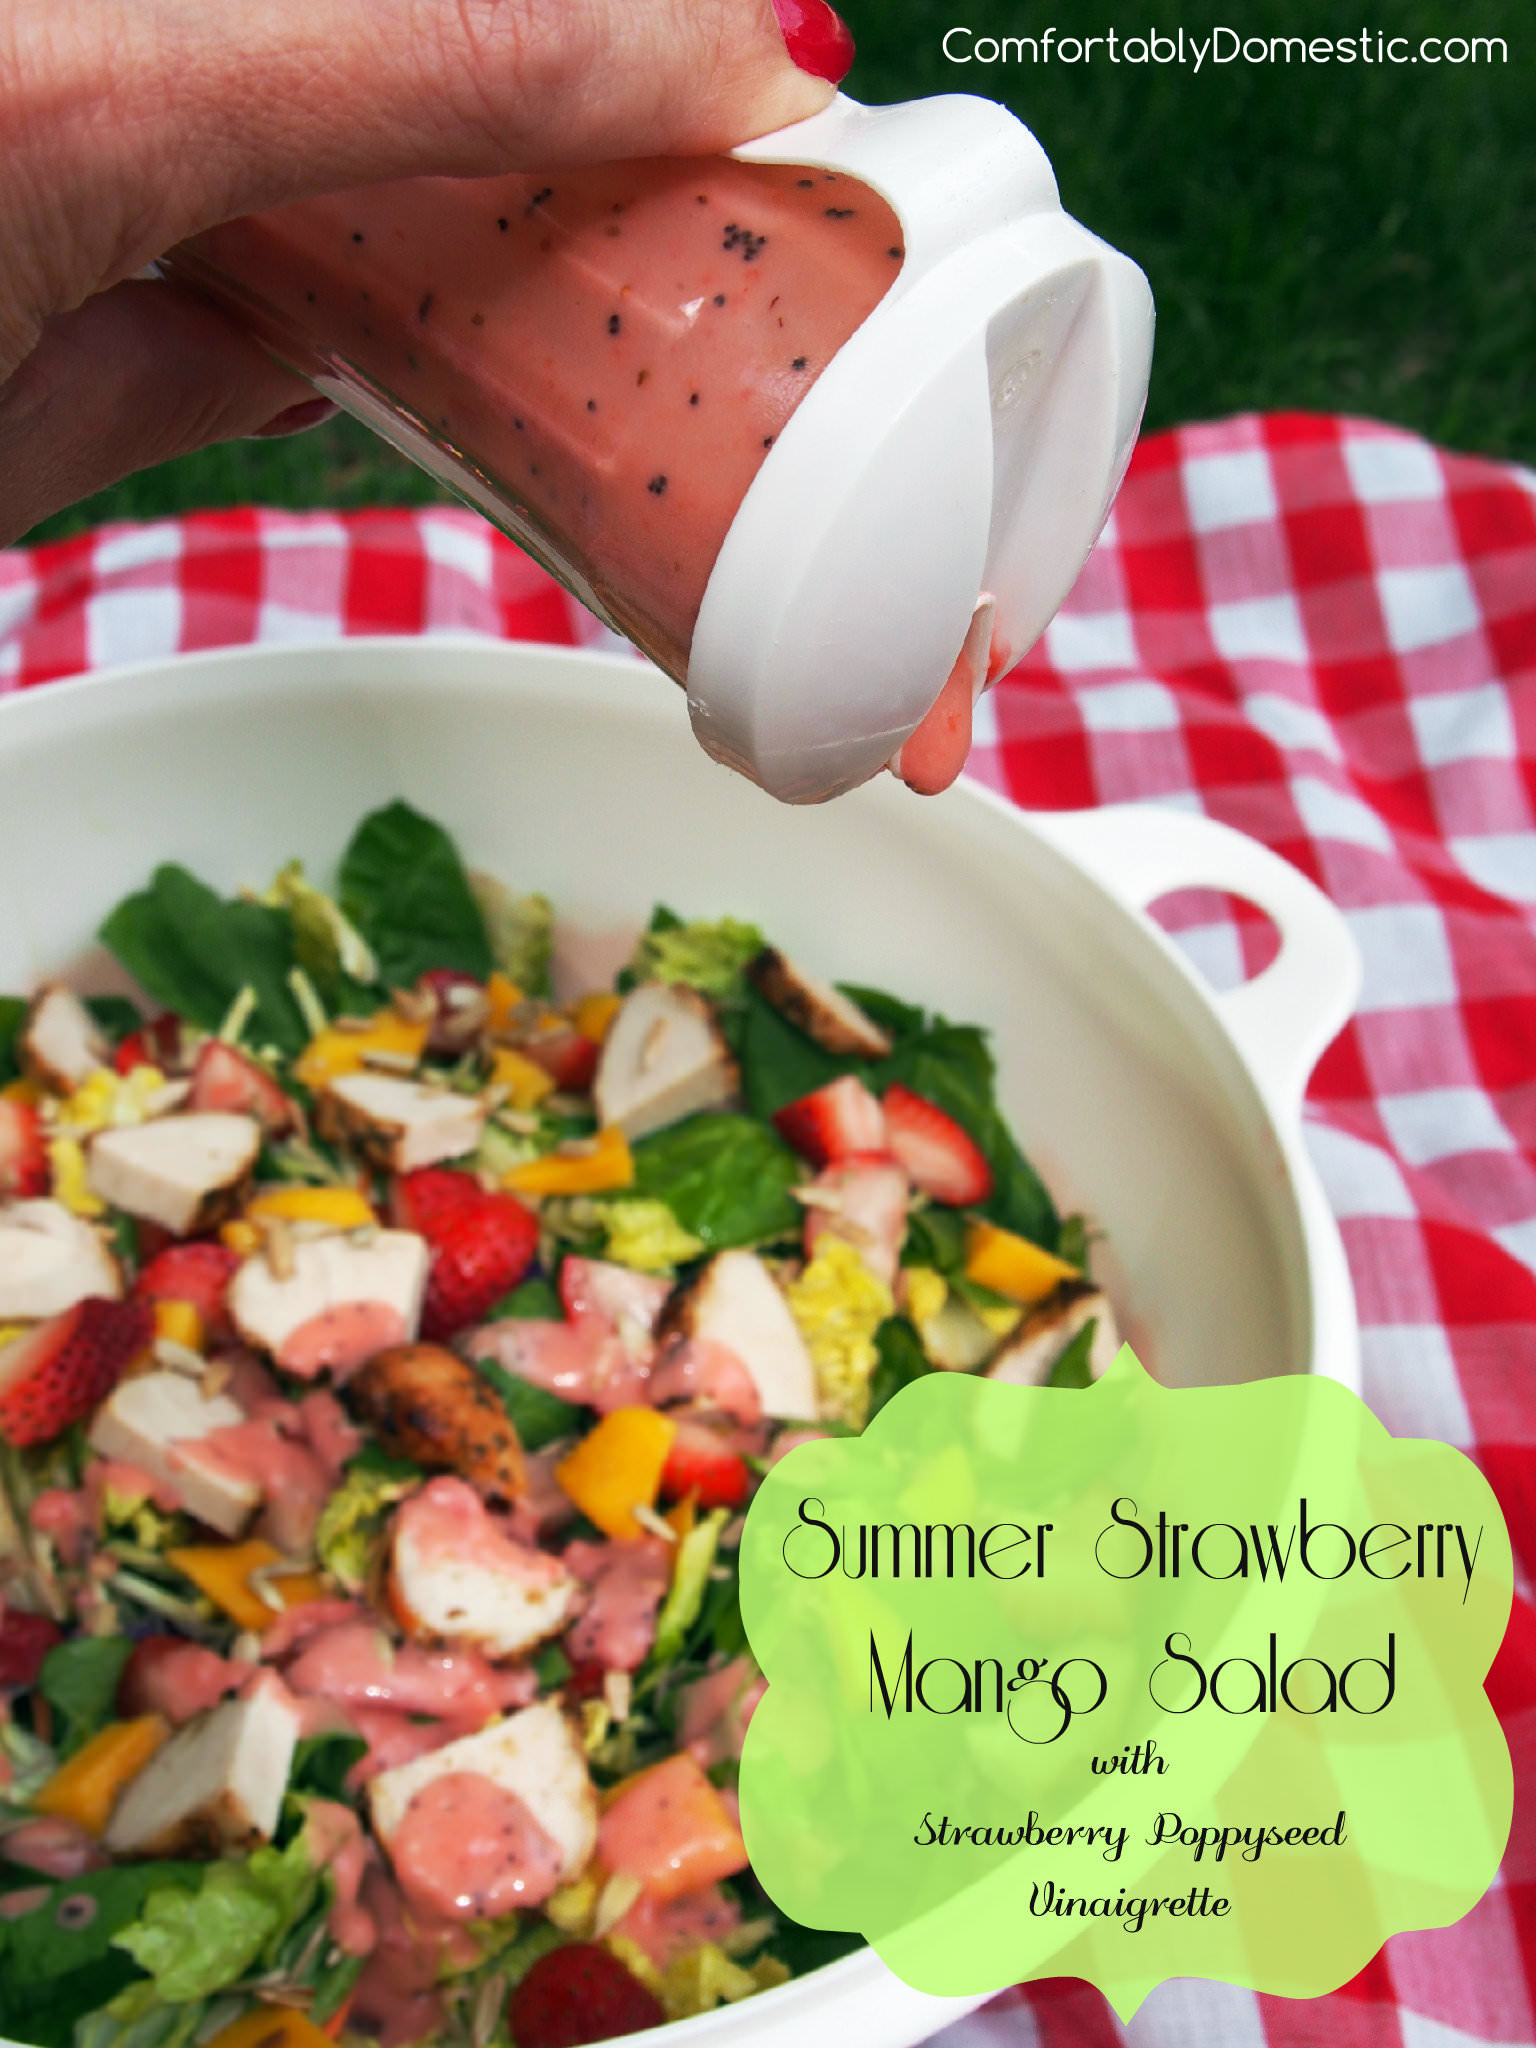 Summer Strawberry Mango Salad | ComfortablyDomestic.com